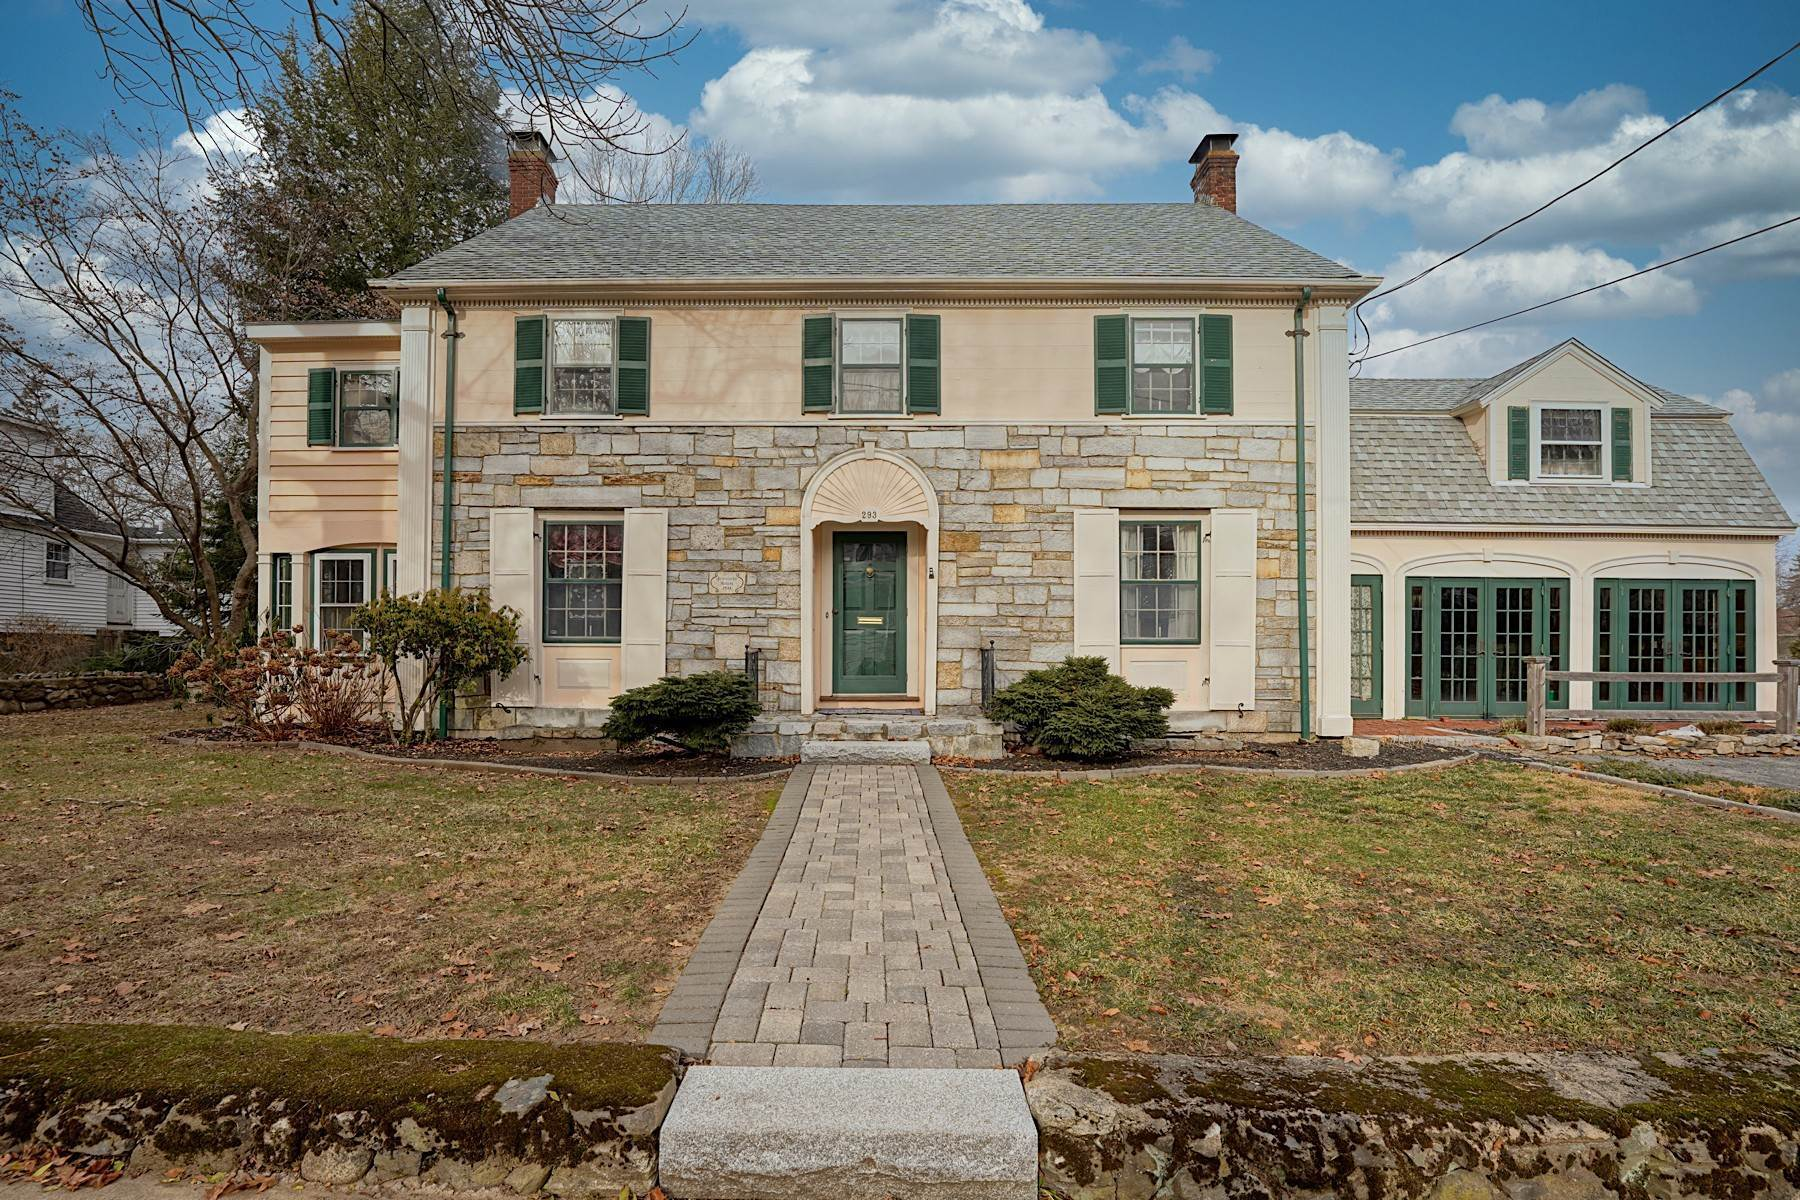 Single Family Homes for Sale at Rare Historic Gem in Portsmouth's Little Harbor District 293 Rockland Street, Portsmouth, NH 03801